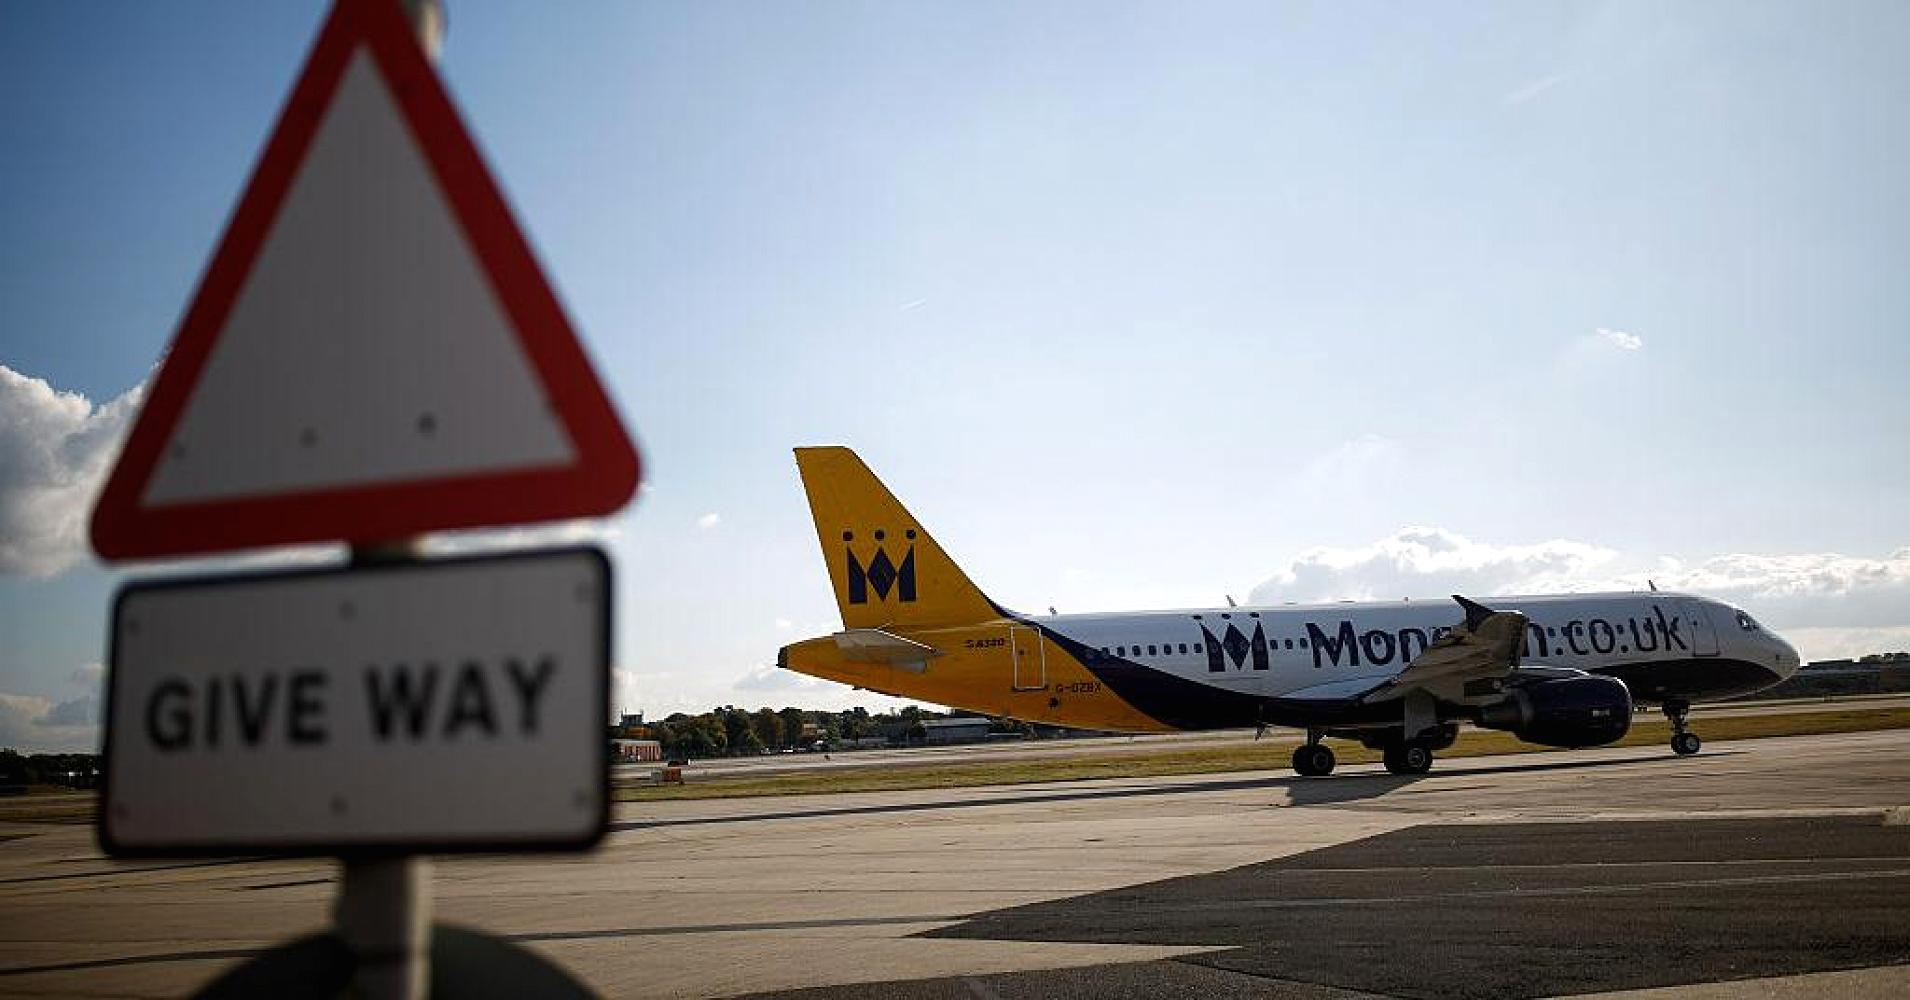 Máy bay của Monarch Airlines /// Ảnh: Bloomberg